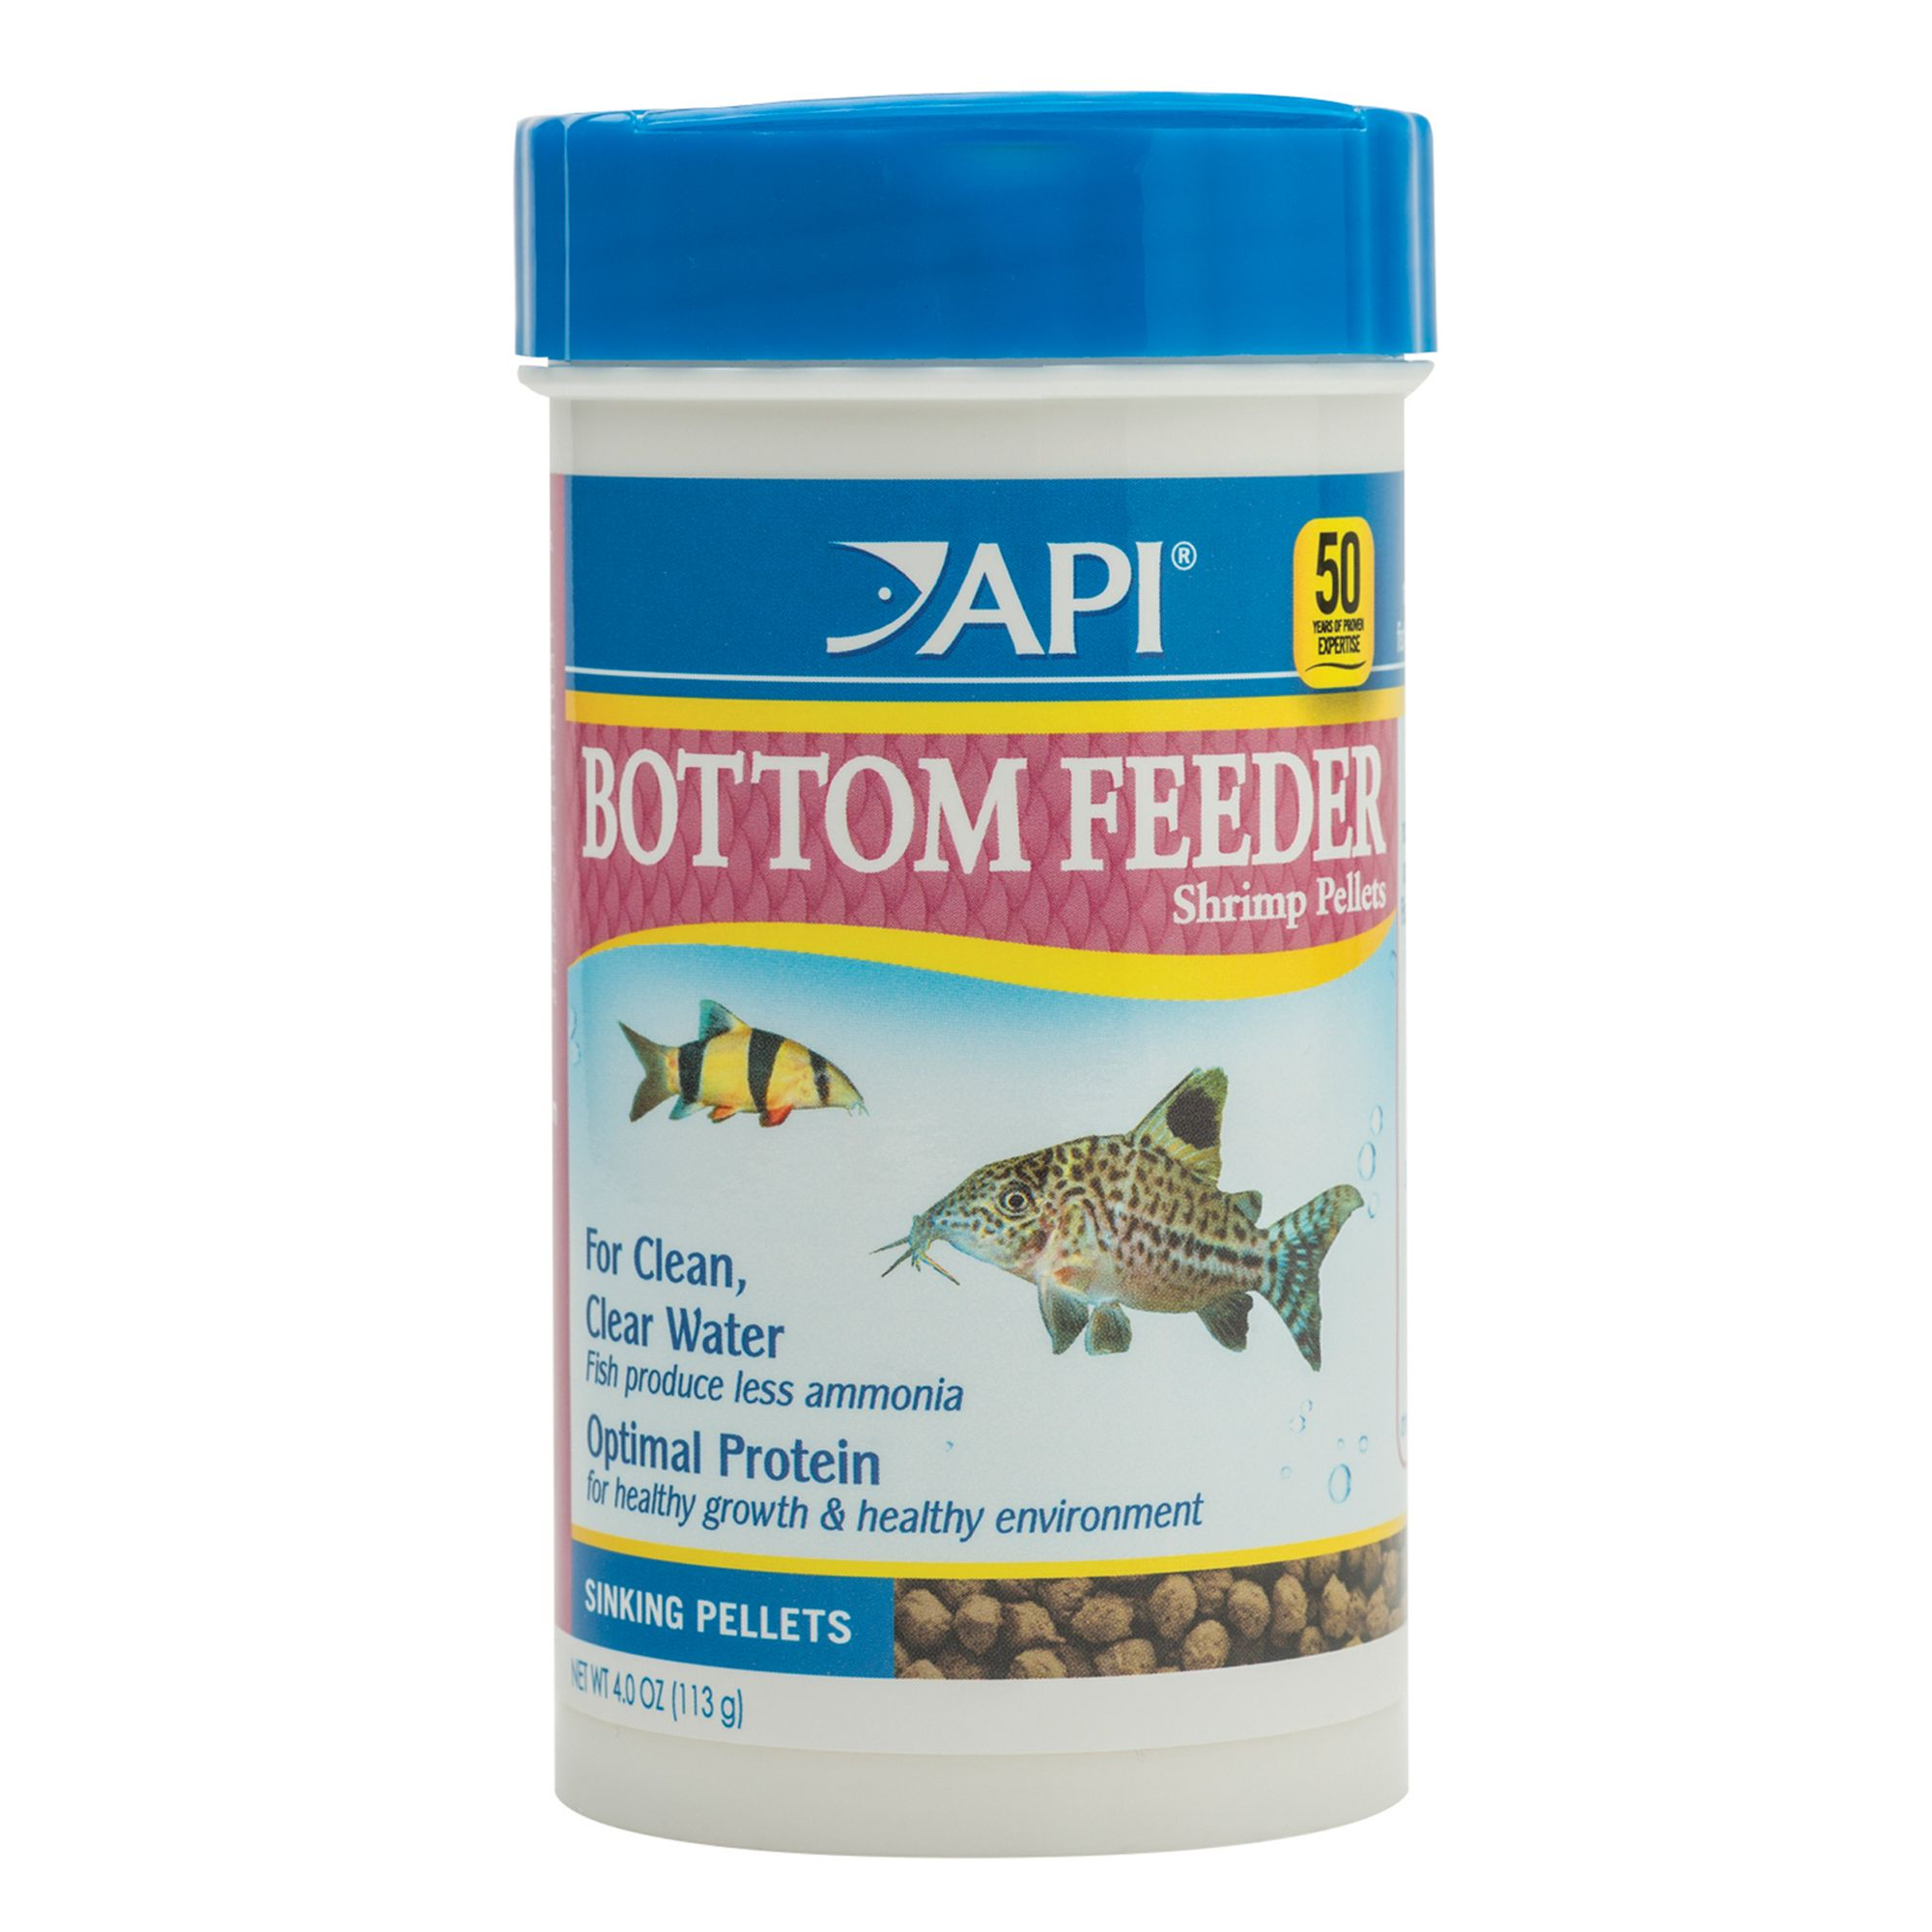 Api Bottom Feeder Premium Shrimp Pellets Fish Food